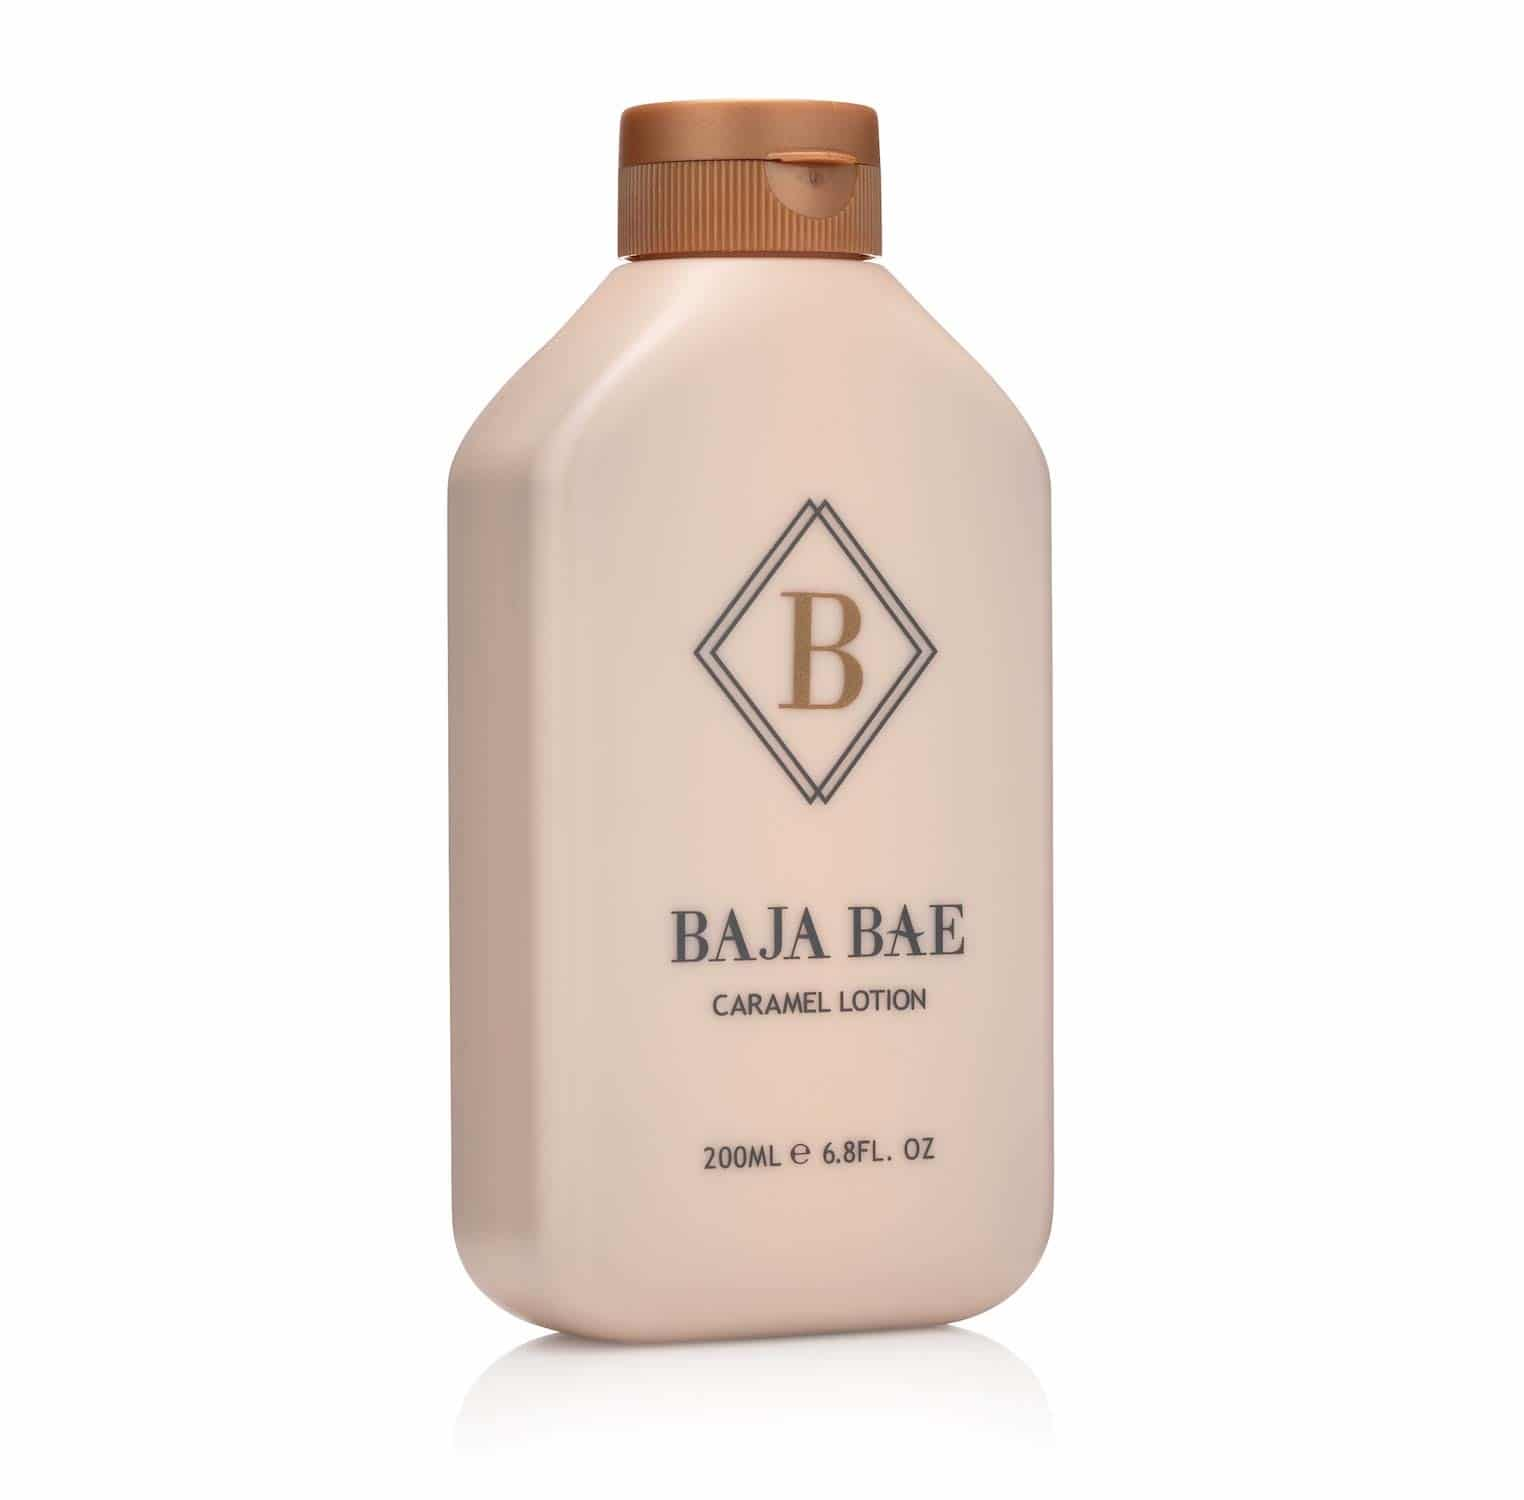 7.BRONZE TANNING LOTION for the Ultimate Bronzed Body Natural Caramel Base Tinted Moisturizer Use everyday for Instant Goddess Glow while Nourishing Your Skin